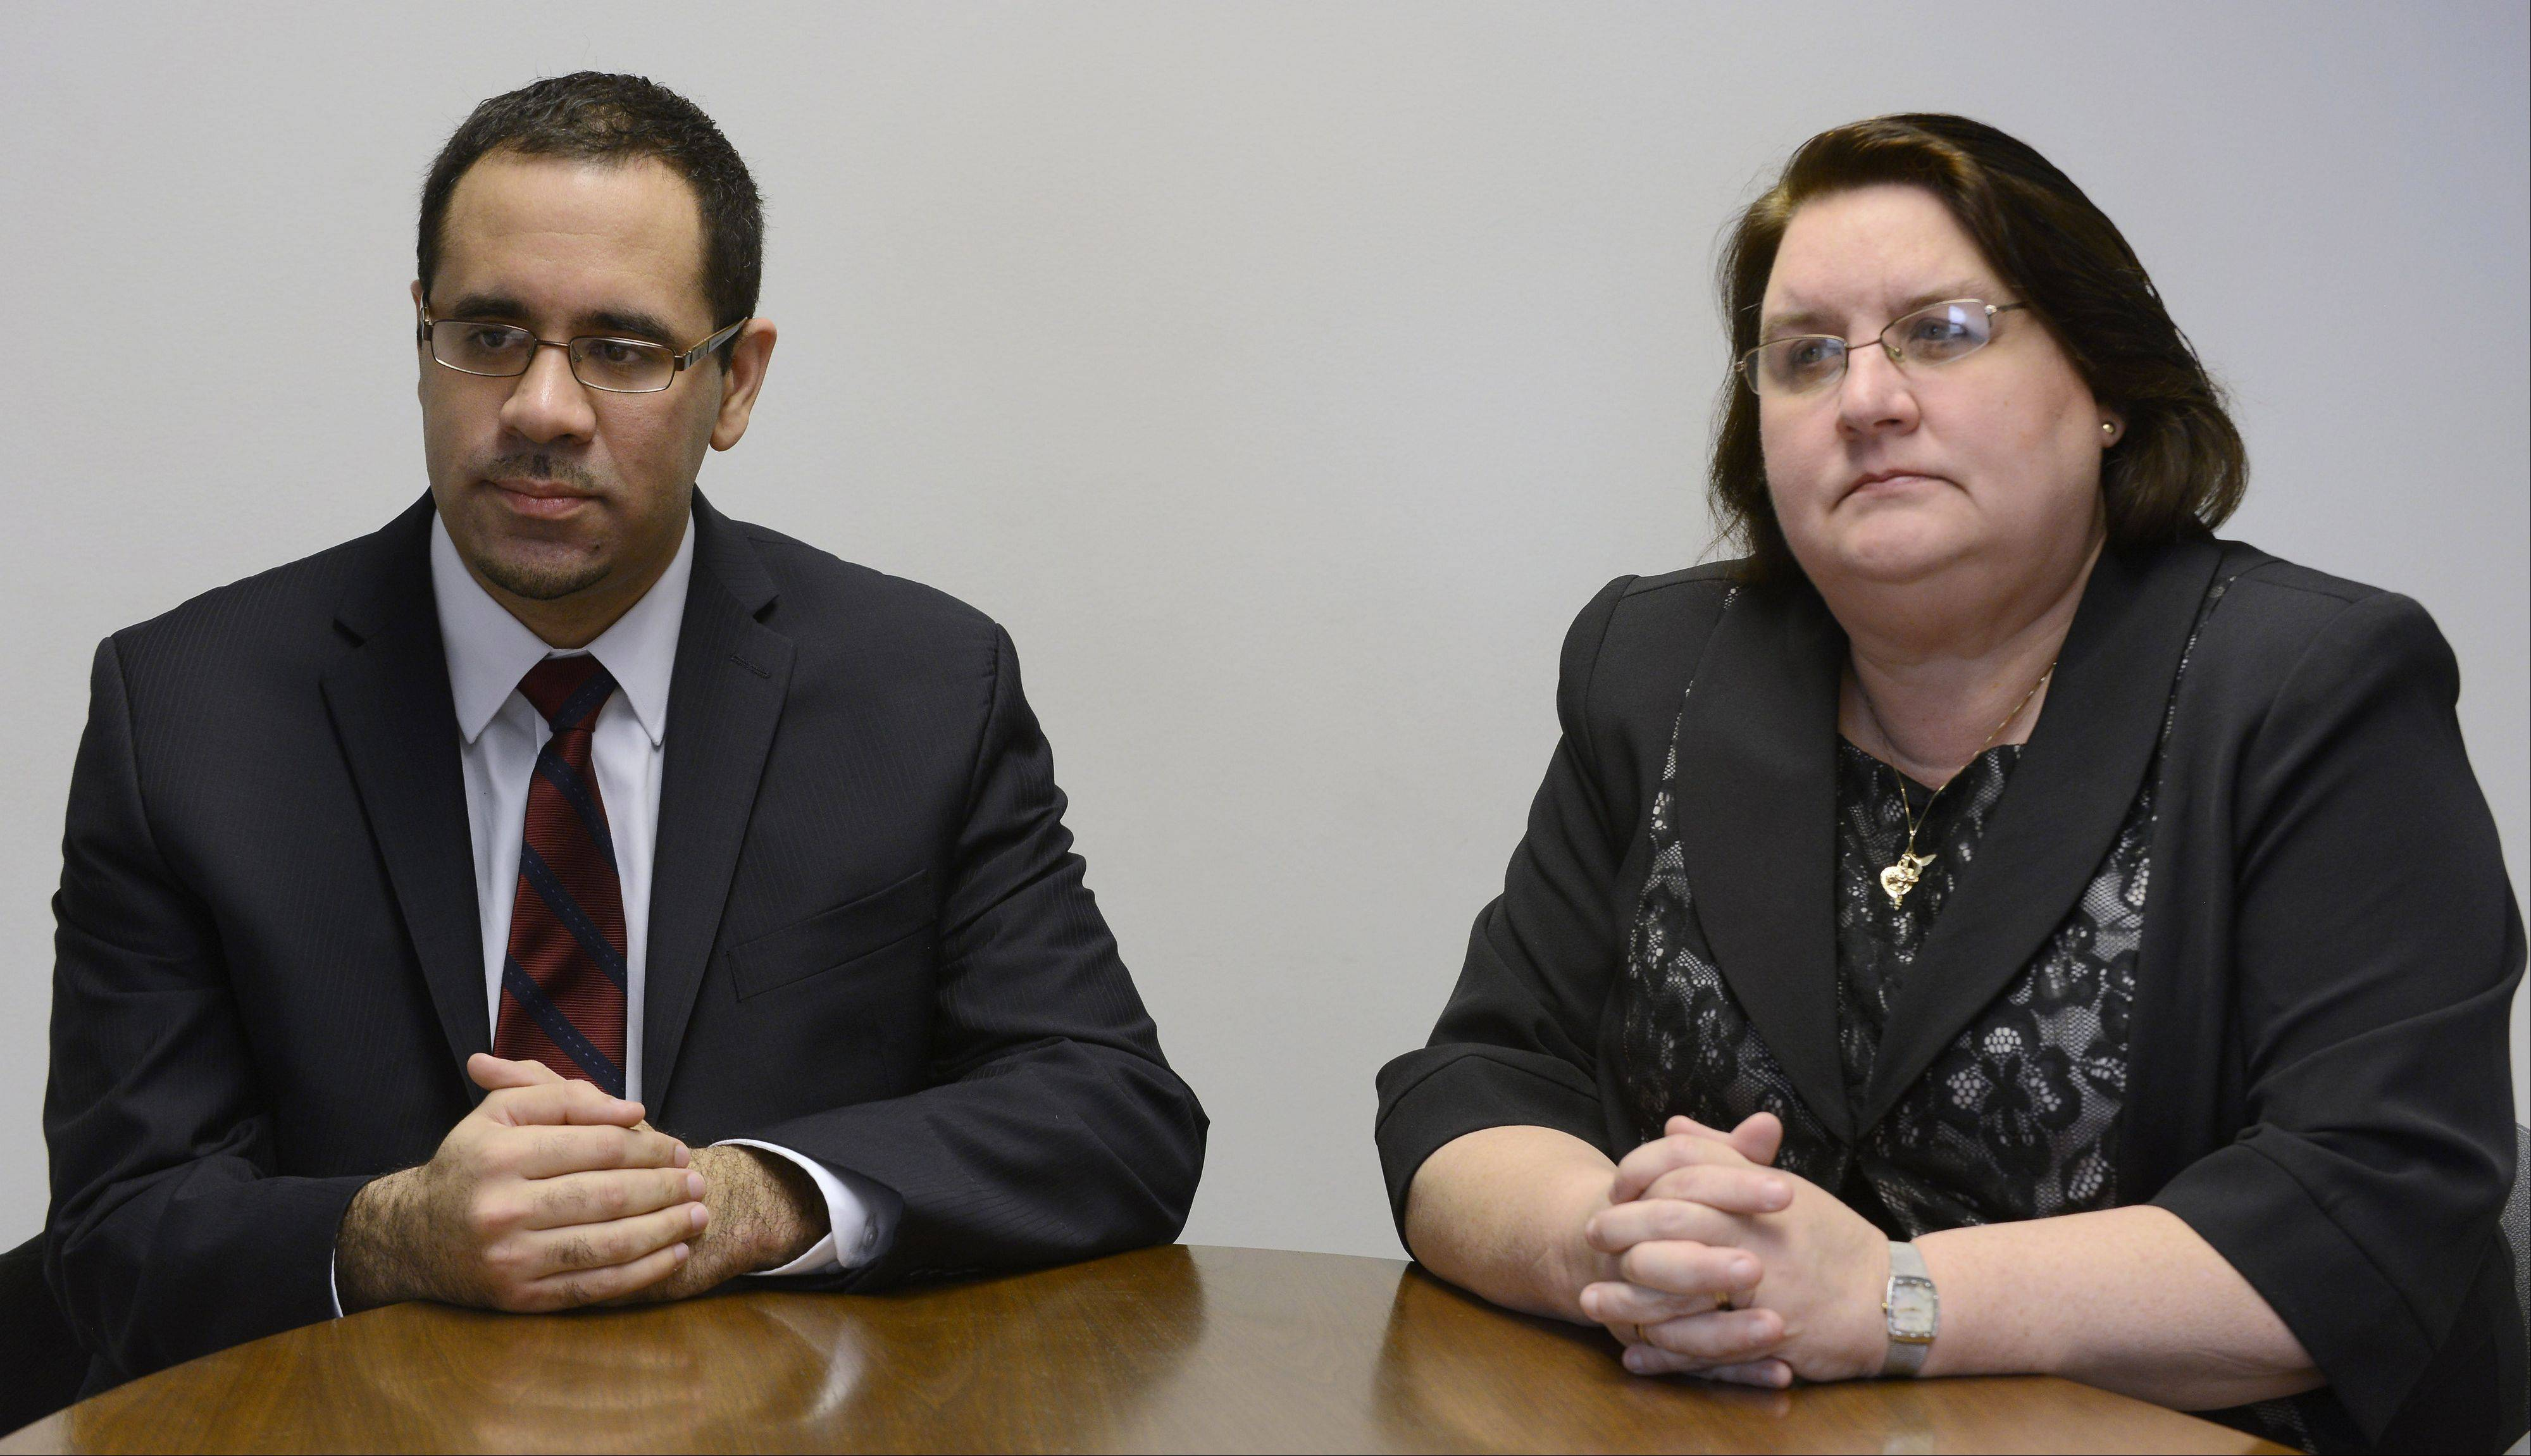 Democratic candidates Antonio Favela and Kathleen Willis are seeking their party's endorsement for the 77th House seat in the March 18 primary.